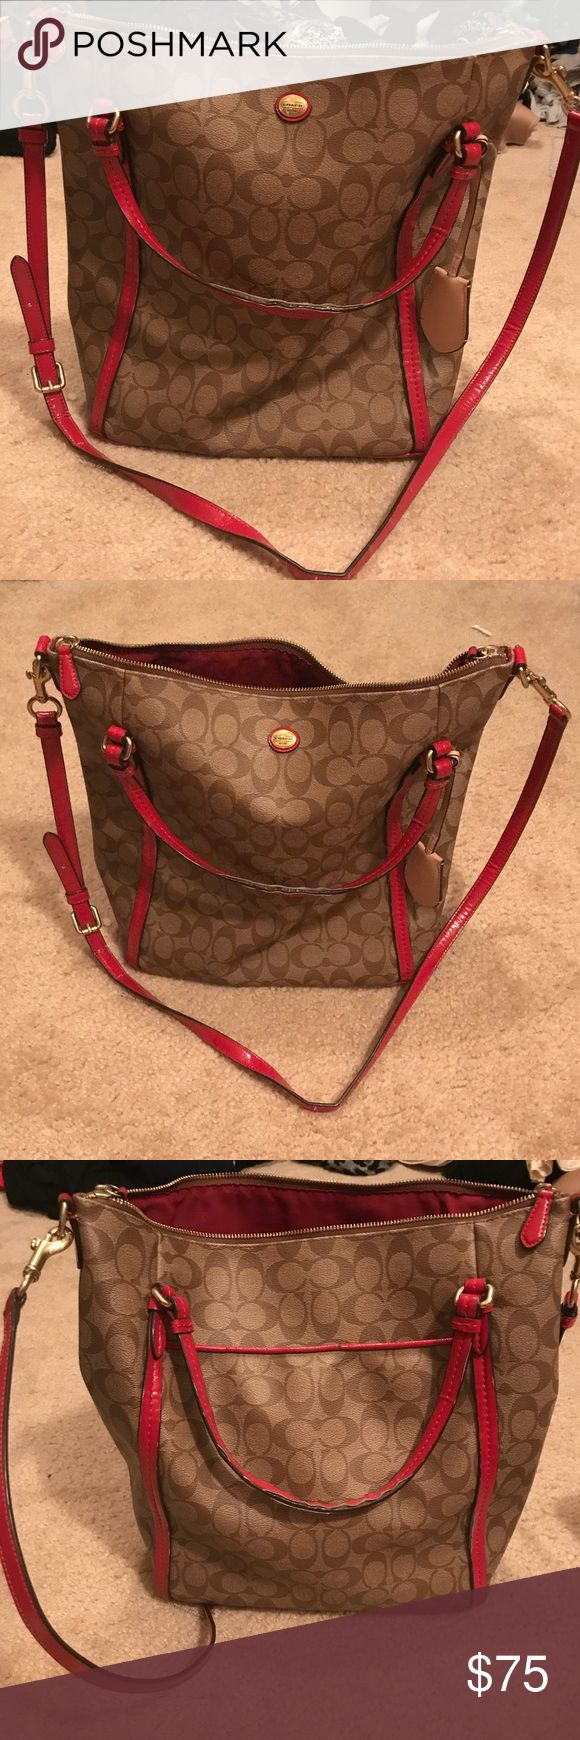 Large coach tote red and tan Beautiful & functional authentic large Coach bag. Great purse for also carrying small laptop, books, or tablets. Good condition, but see pictures that show wear on straps and small scuff on a corner on bottom. Coach Bags Totes